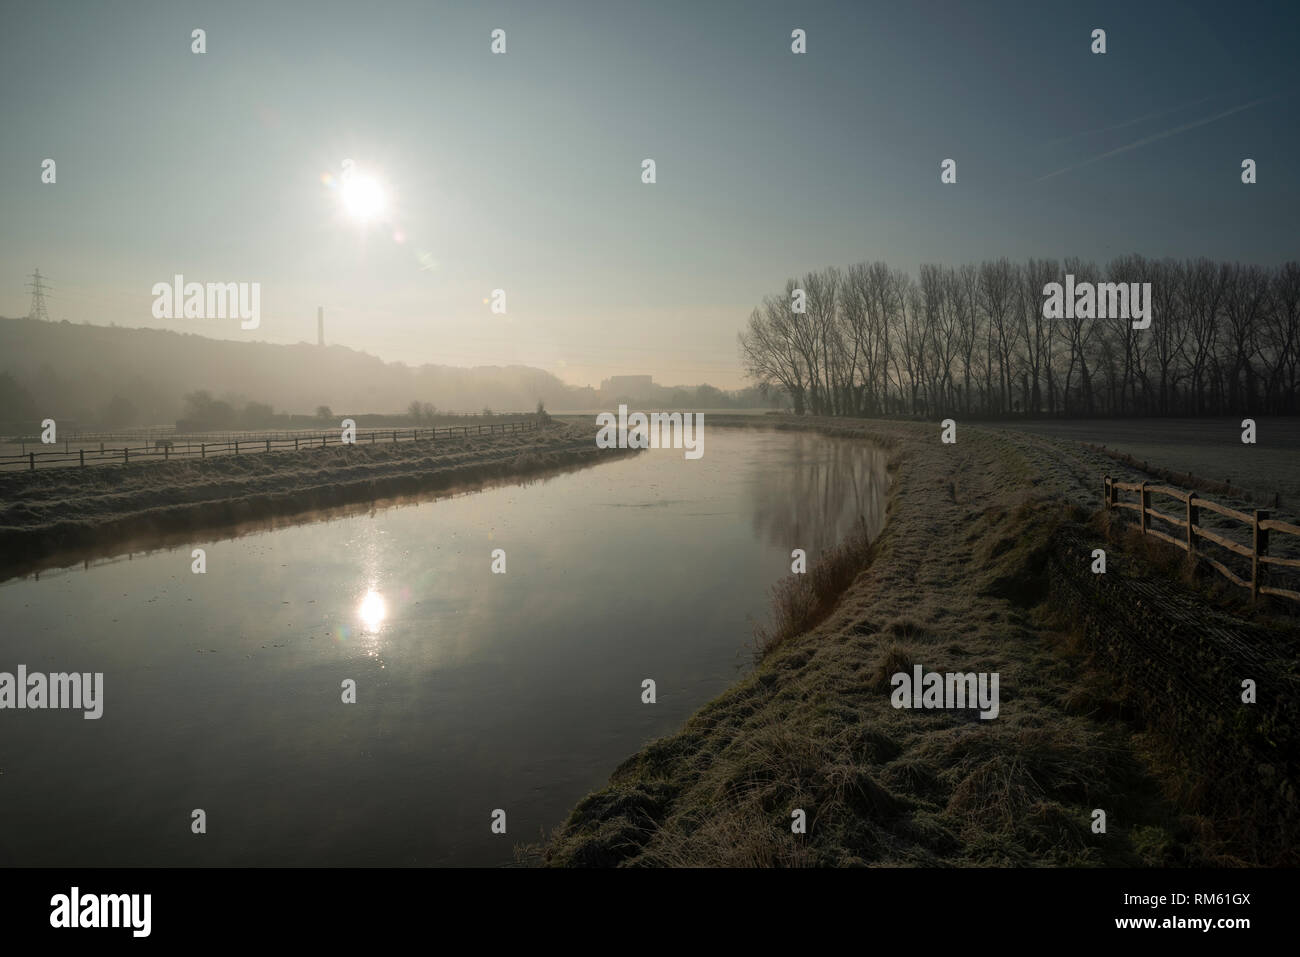 A cold, misty Winter morning on the River Adur near Bramber, West Sussex, UK Stock Photo